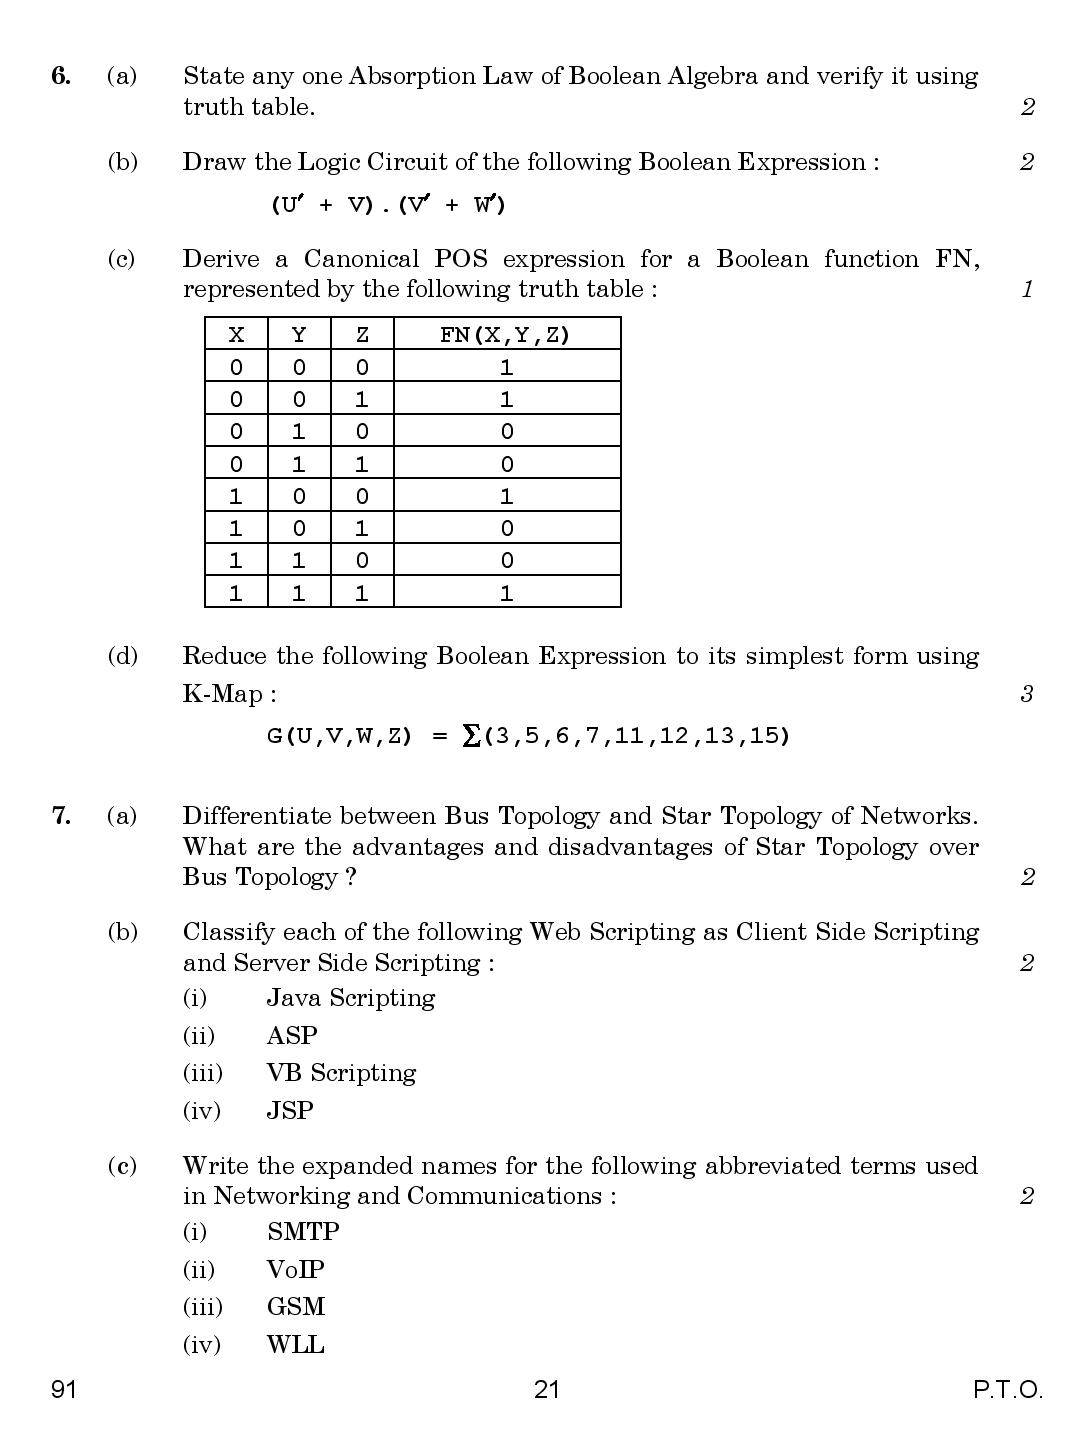 Computer Science 2018 Question Paper Page-21